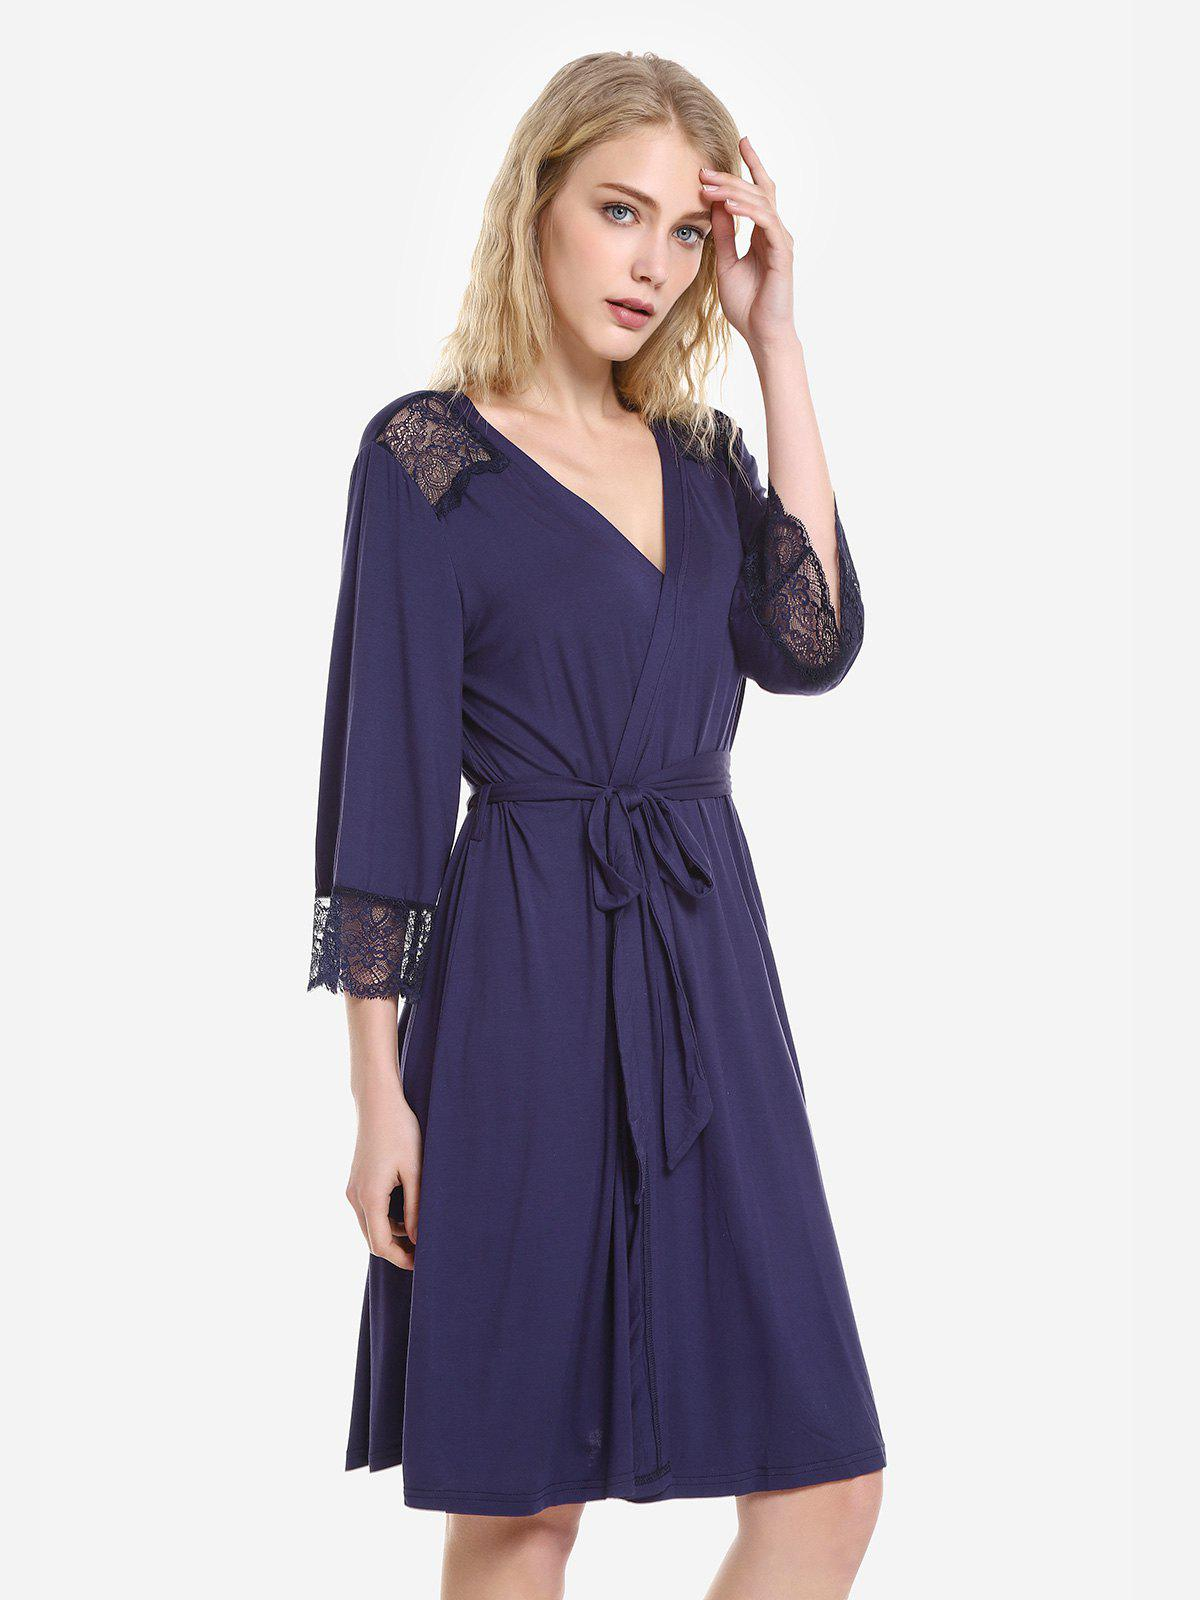 ZAN.STYLE Front Open Nightgown Belt Sleepwear Кубовый цвет L